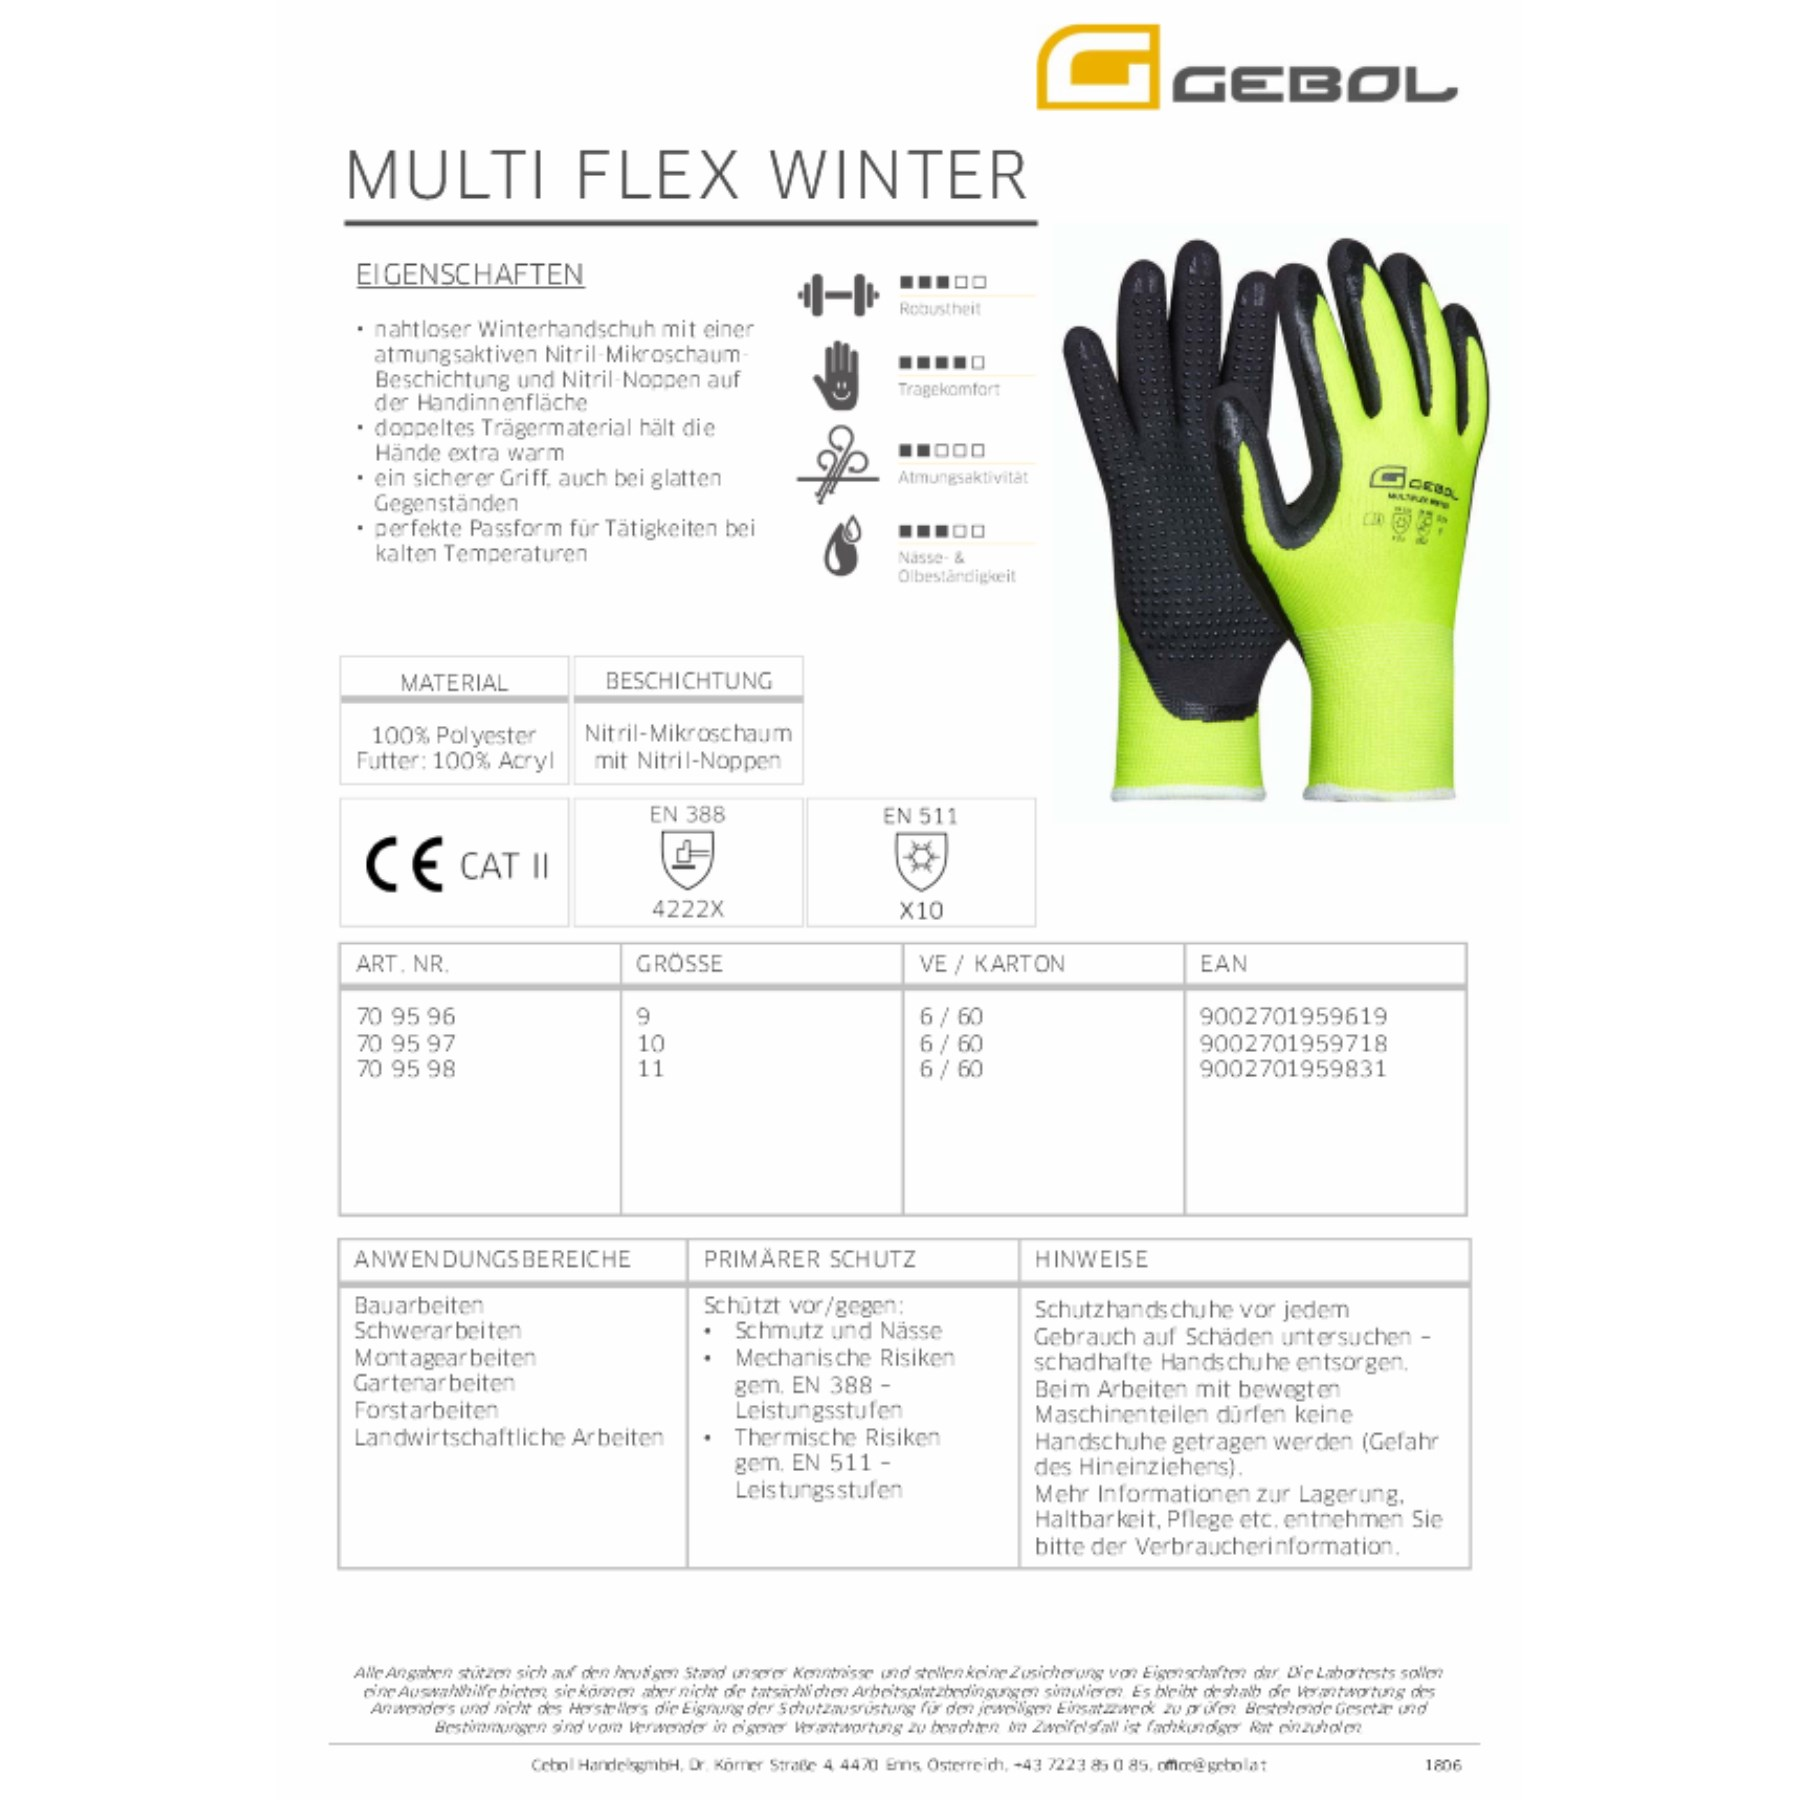 1223577 - Arbeitshandschuh Multiflex Winter